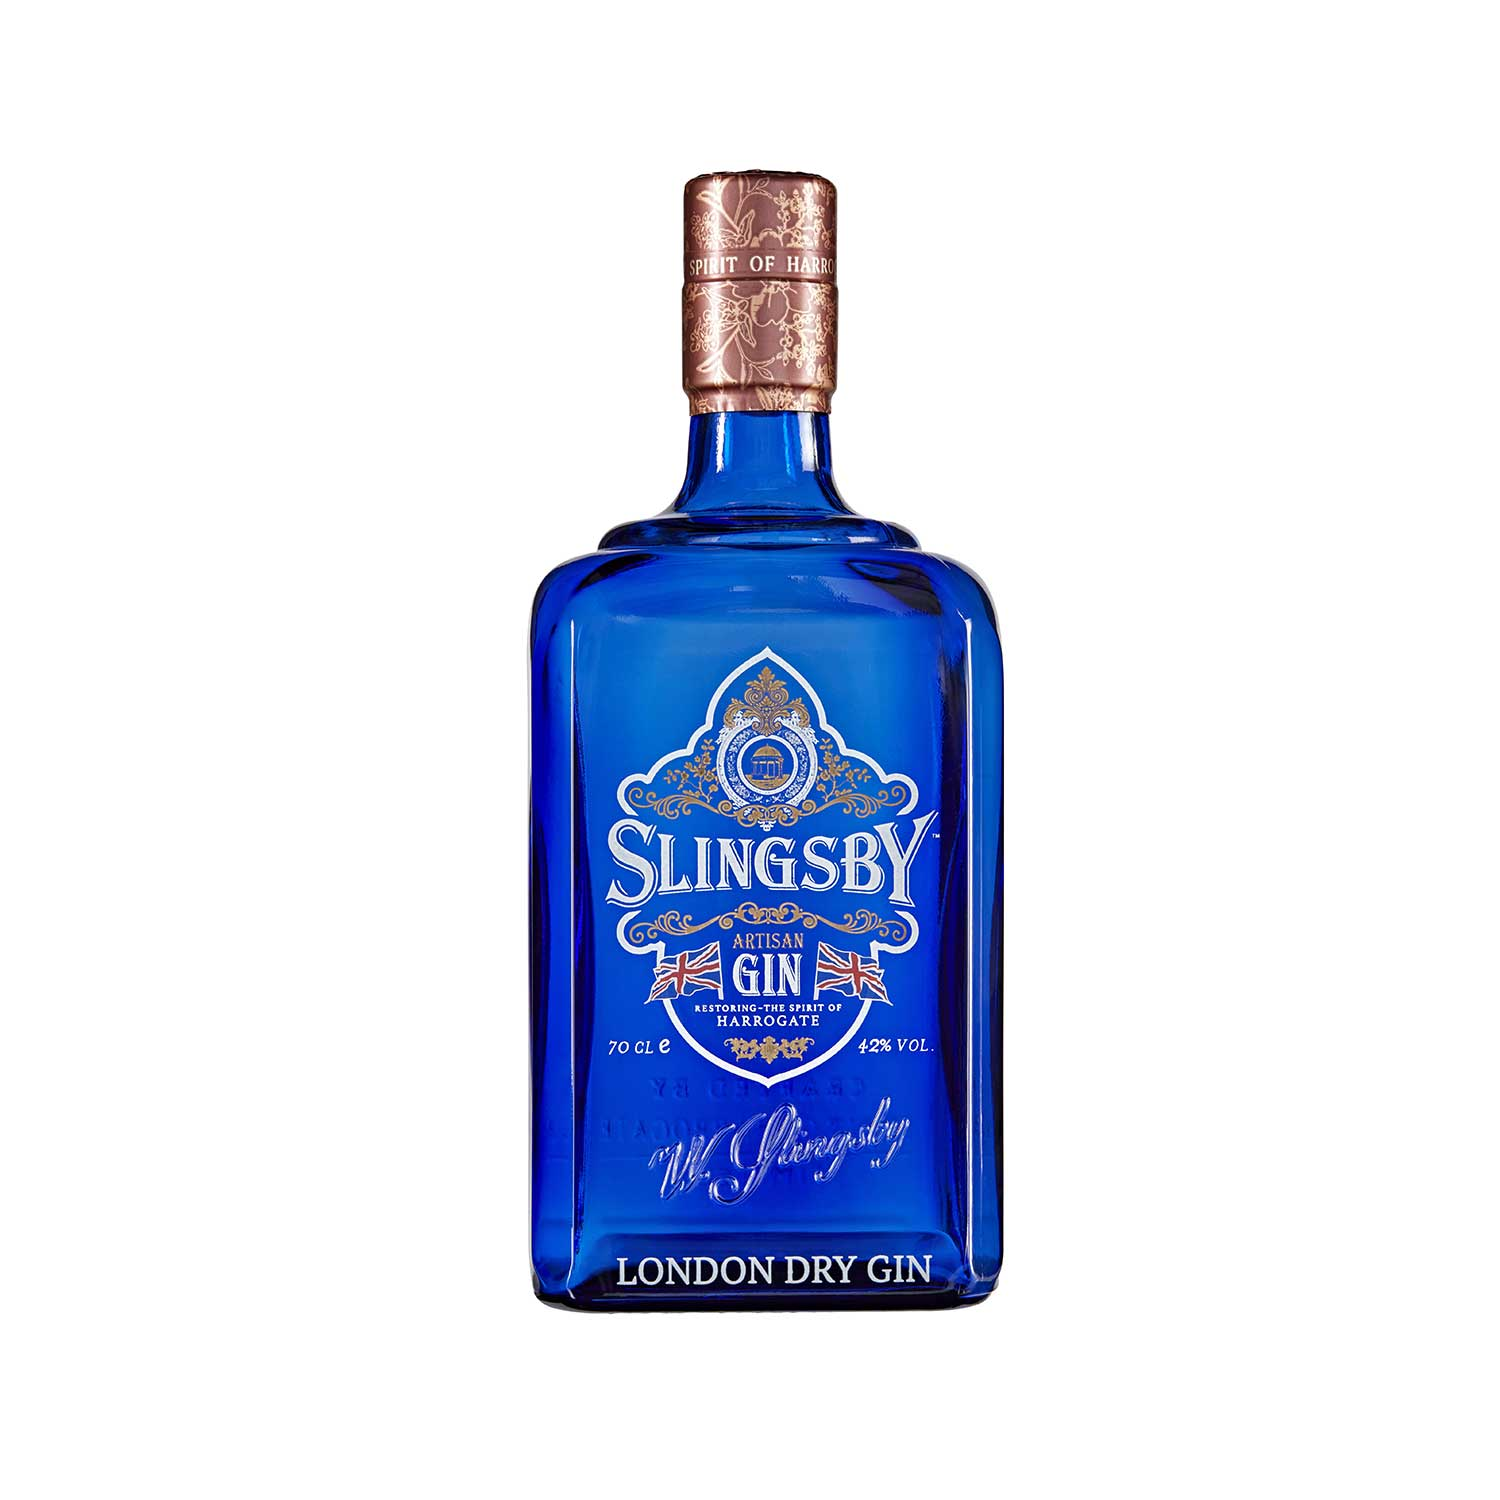 Slingsby London Dry Gin bottle 2021